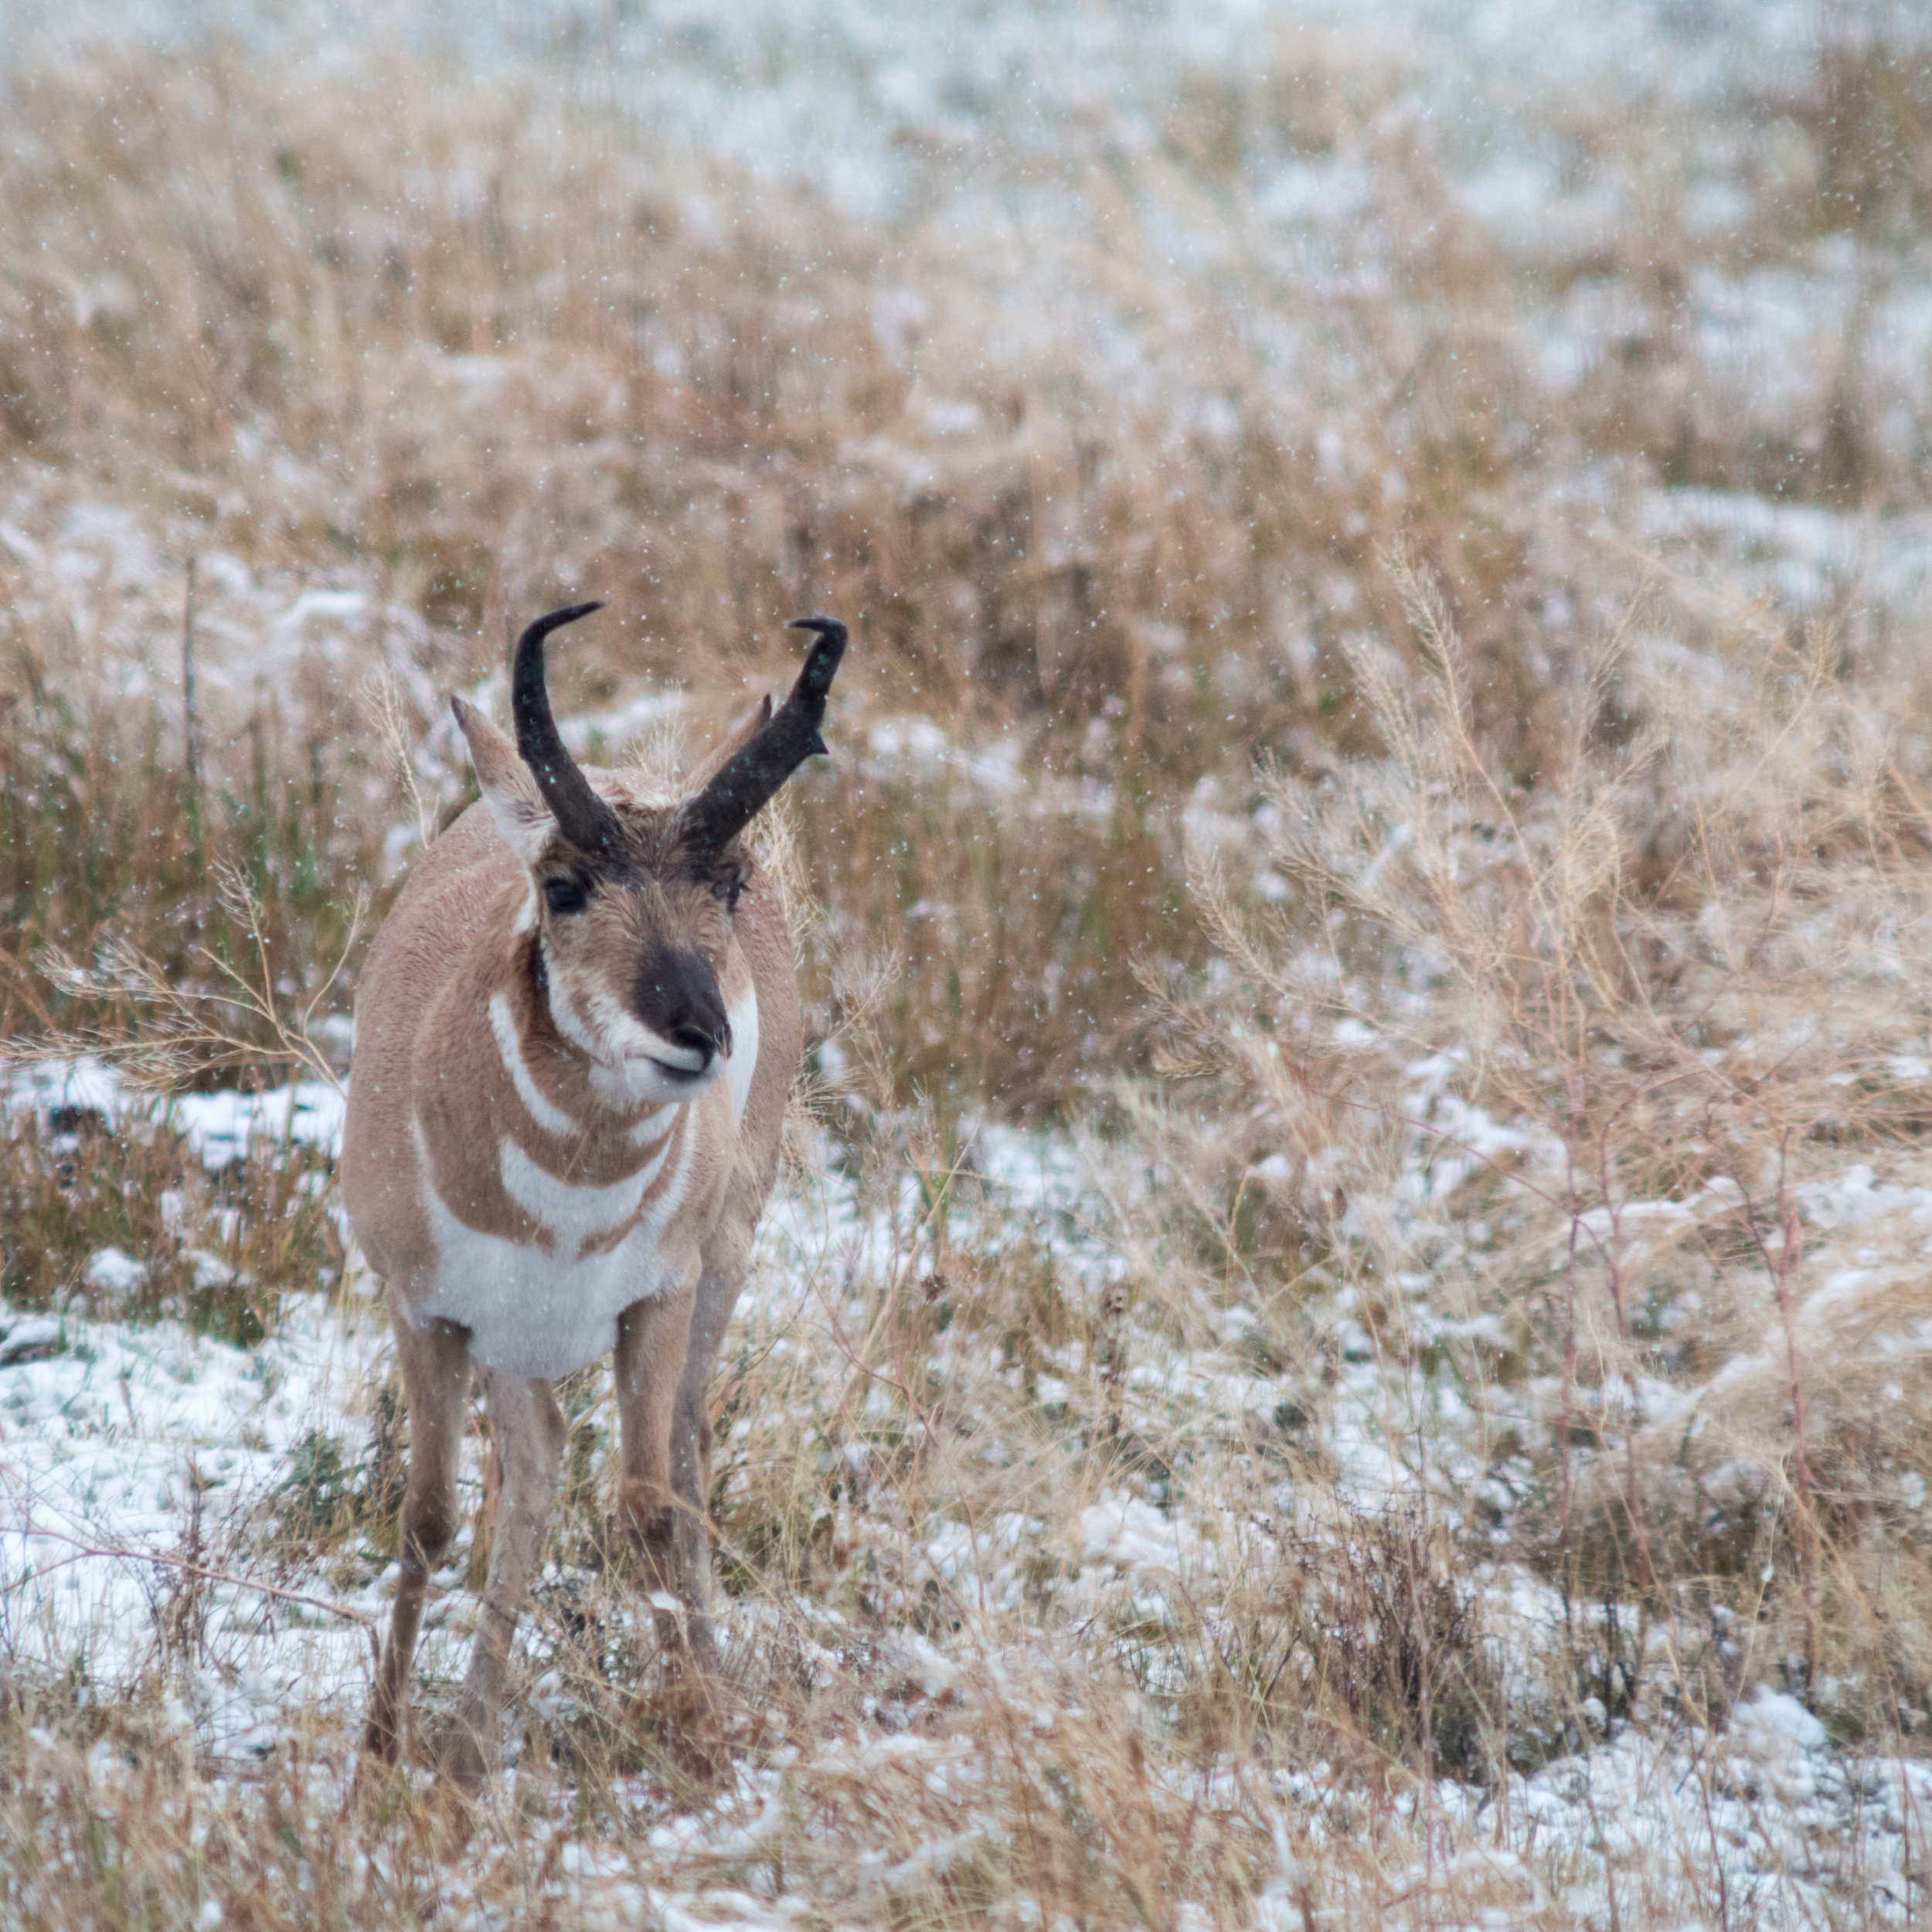 Pronghorn in the snow. Leica SL with Canon 400mm f/2.8 lens